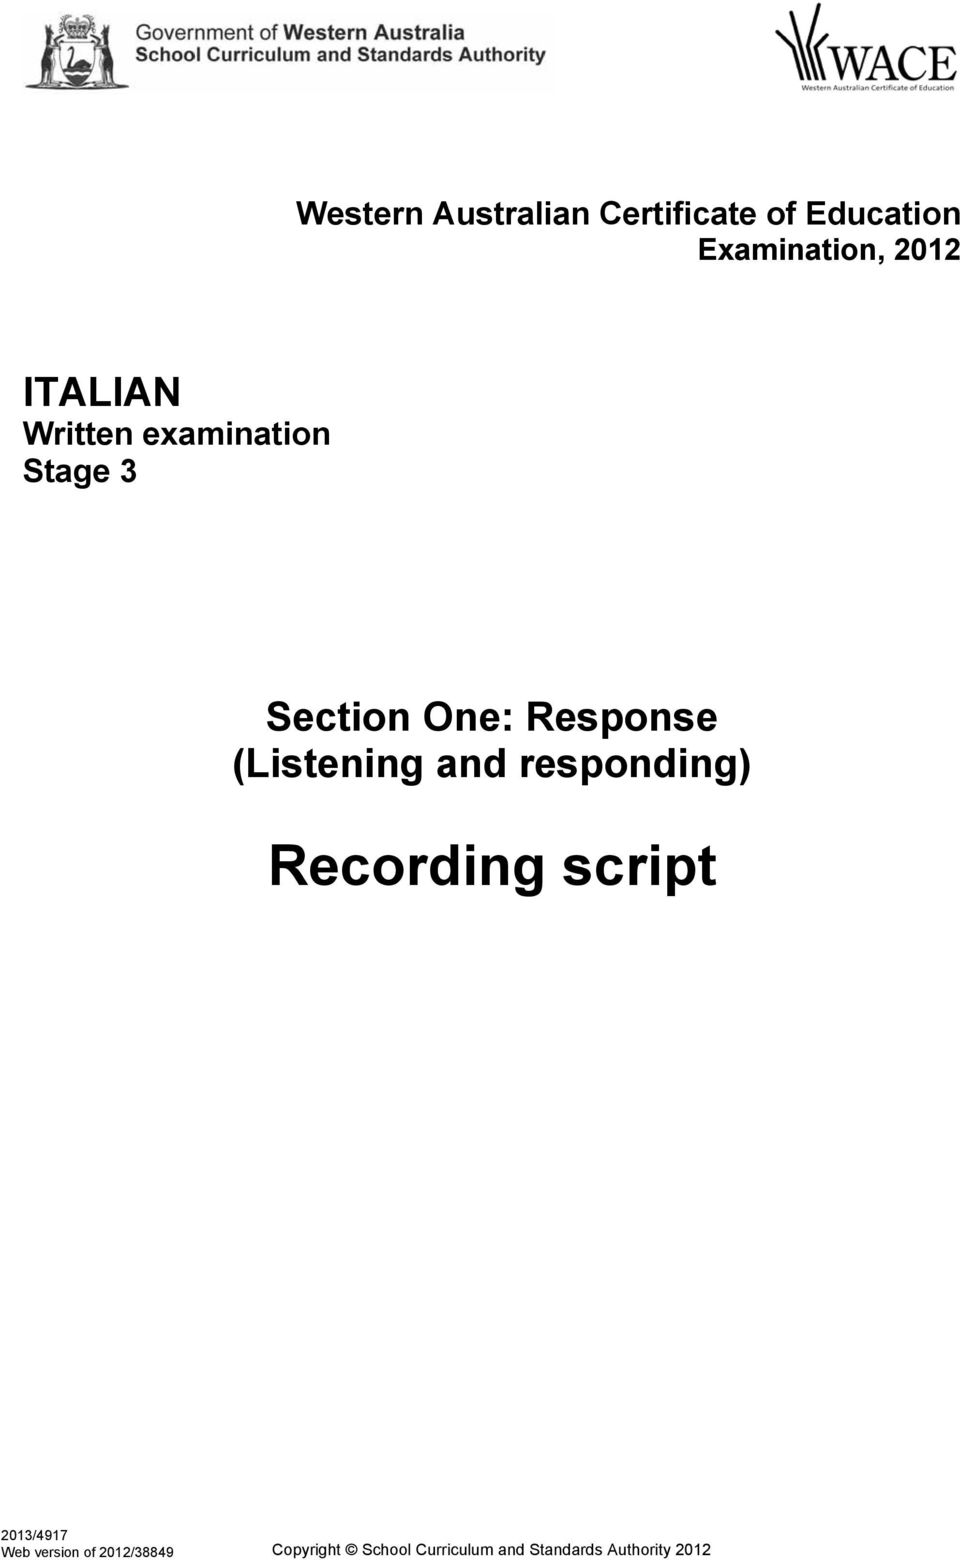 Section One: Response (Listening and responding)